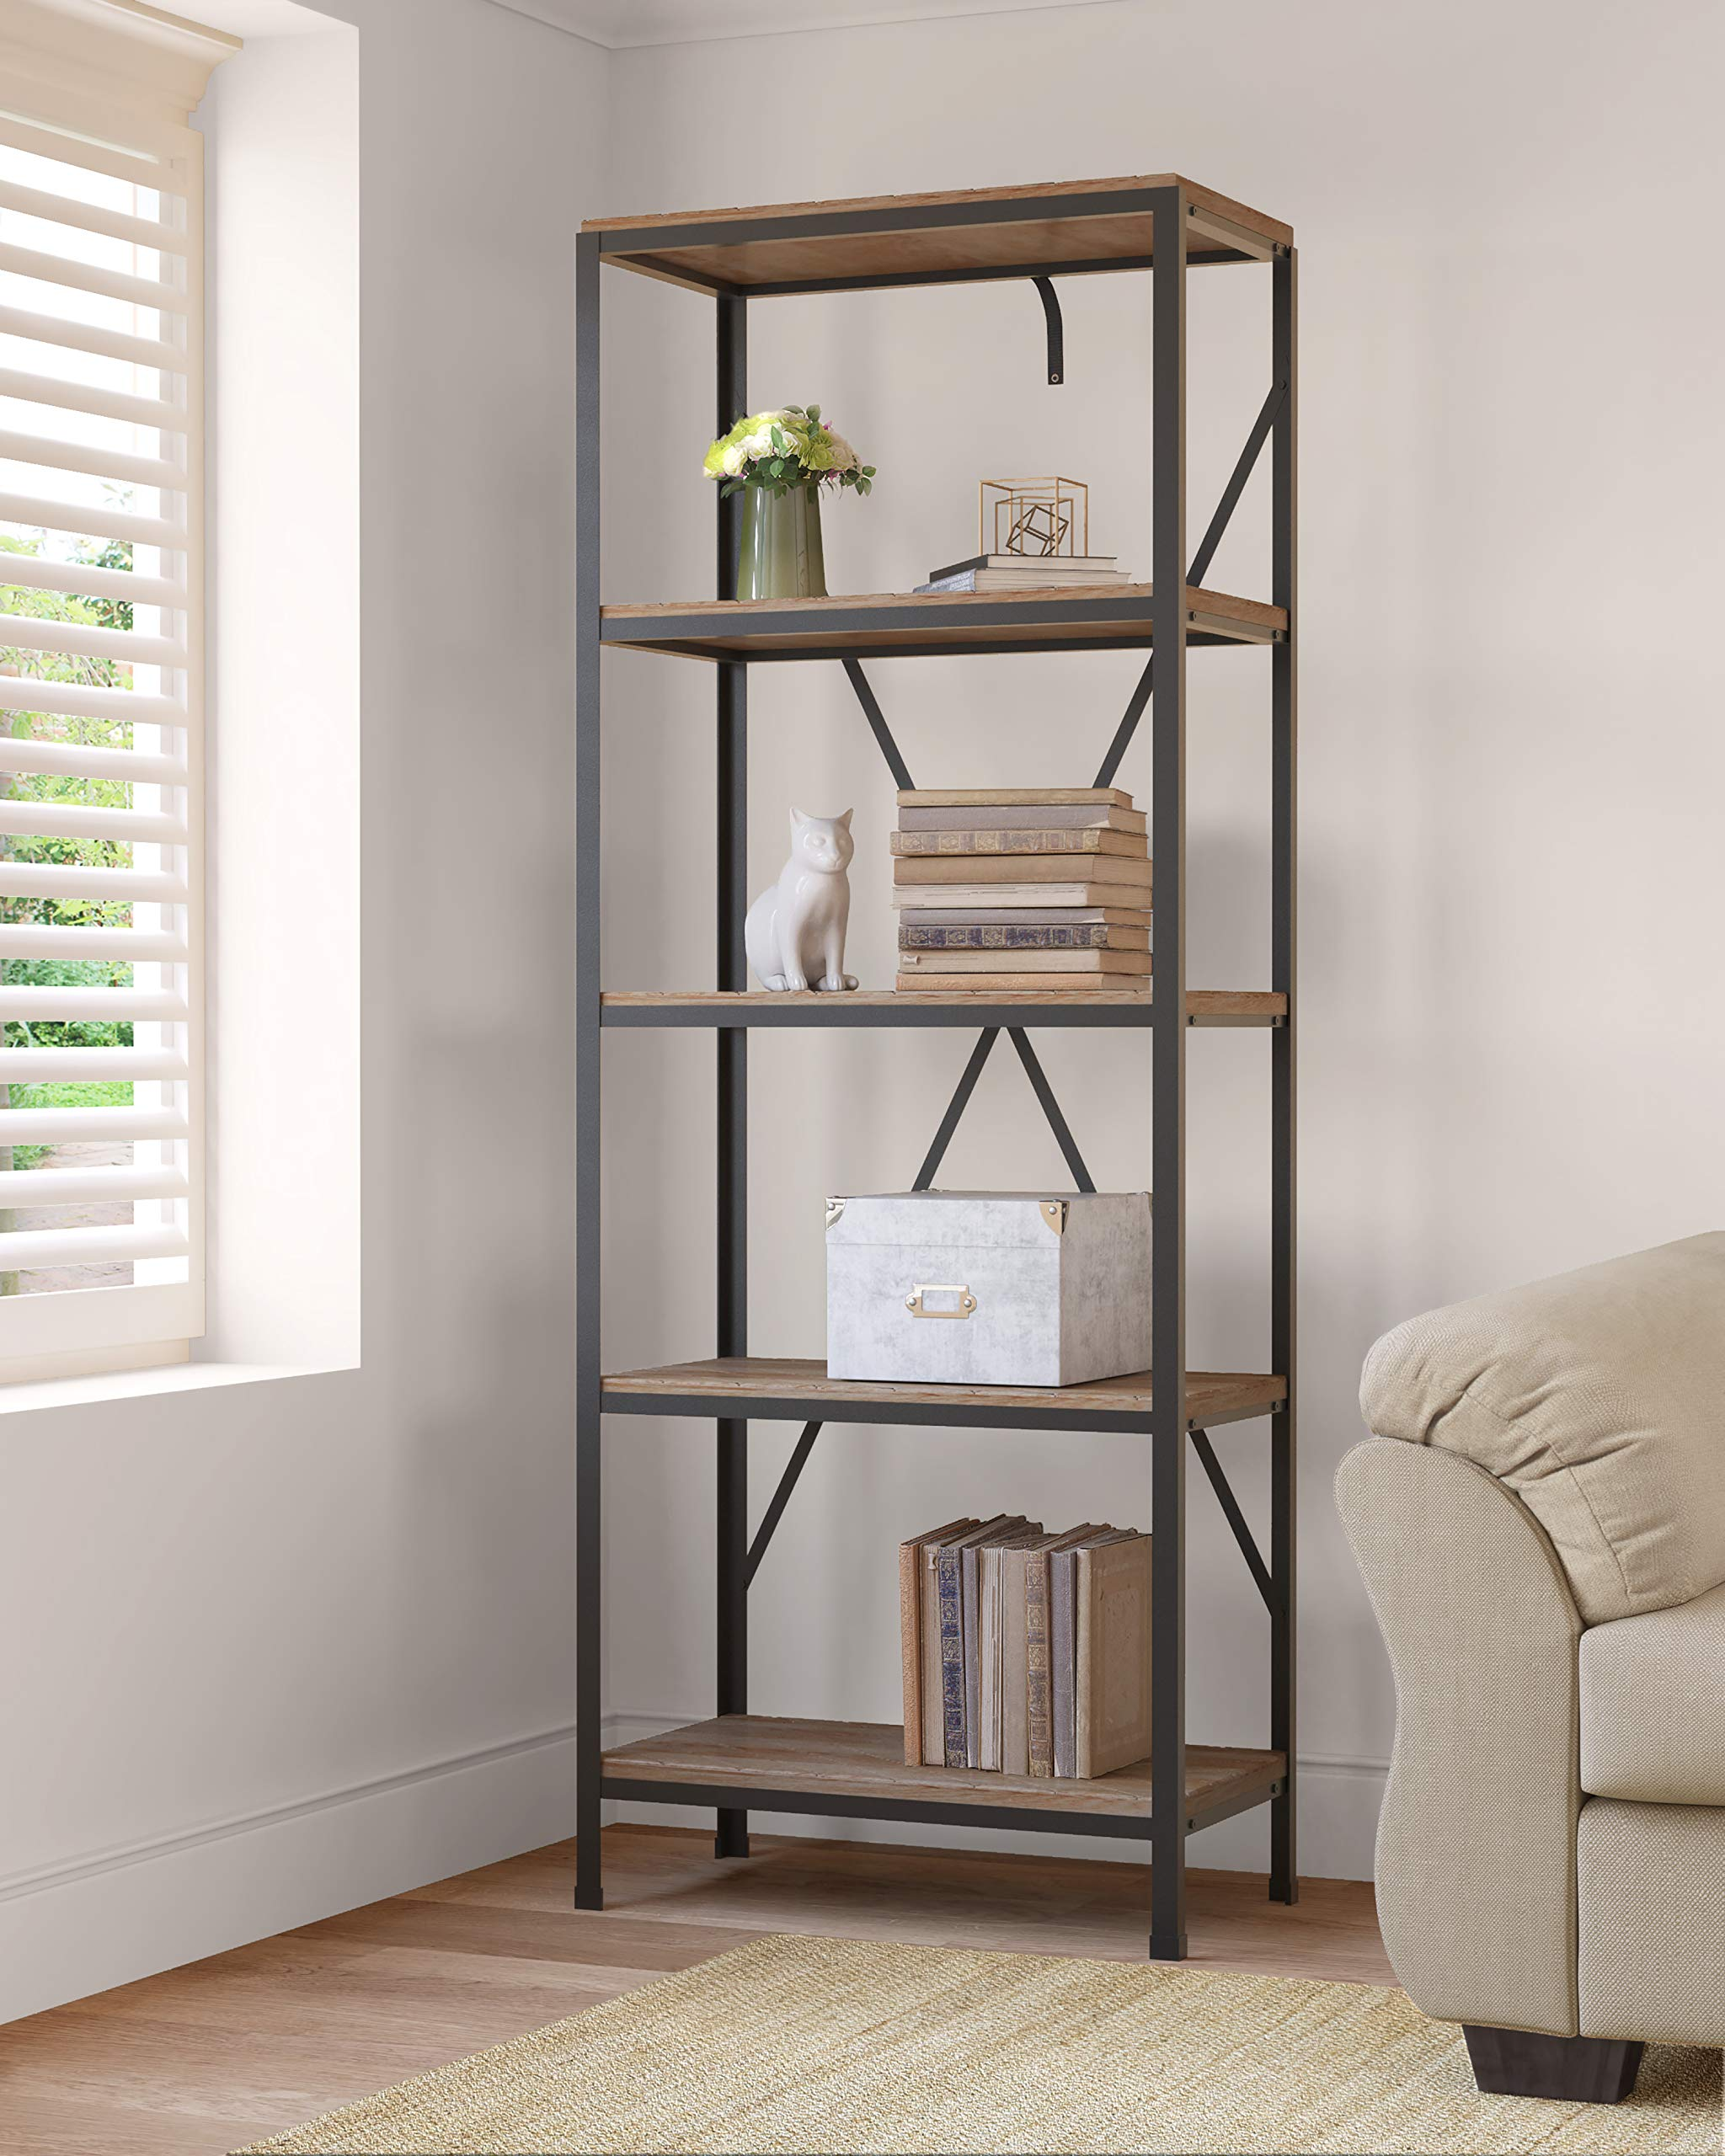 Click Decor Fubc10019a Farmhouse Bookshelf Rustic Black Buy Online In Albania Missing Category Value Products In Albania See Prices Reviews And Free Delivery Over 7 500 Lek Desertcart